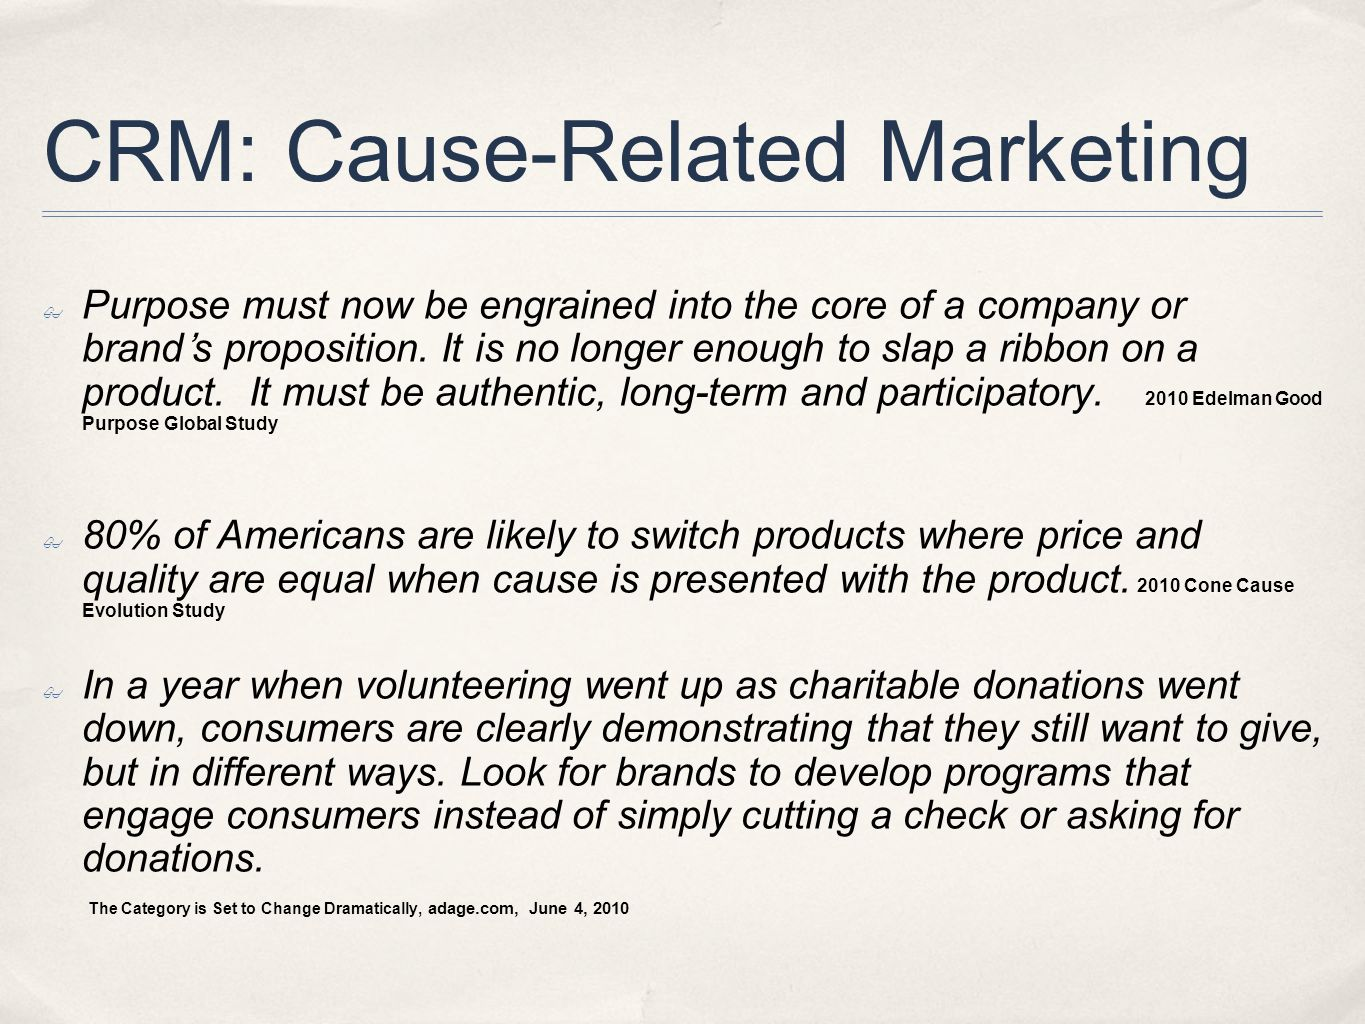 CRM: Cause-Related Marketing Purpose must now be engrained into the core of a company or brands proposition.